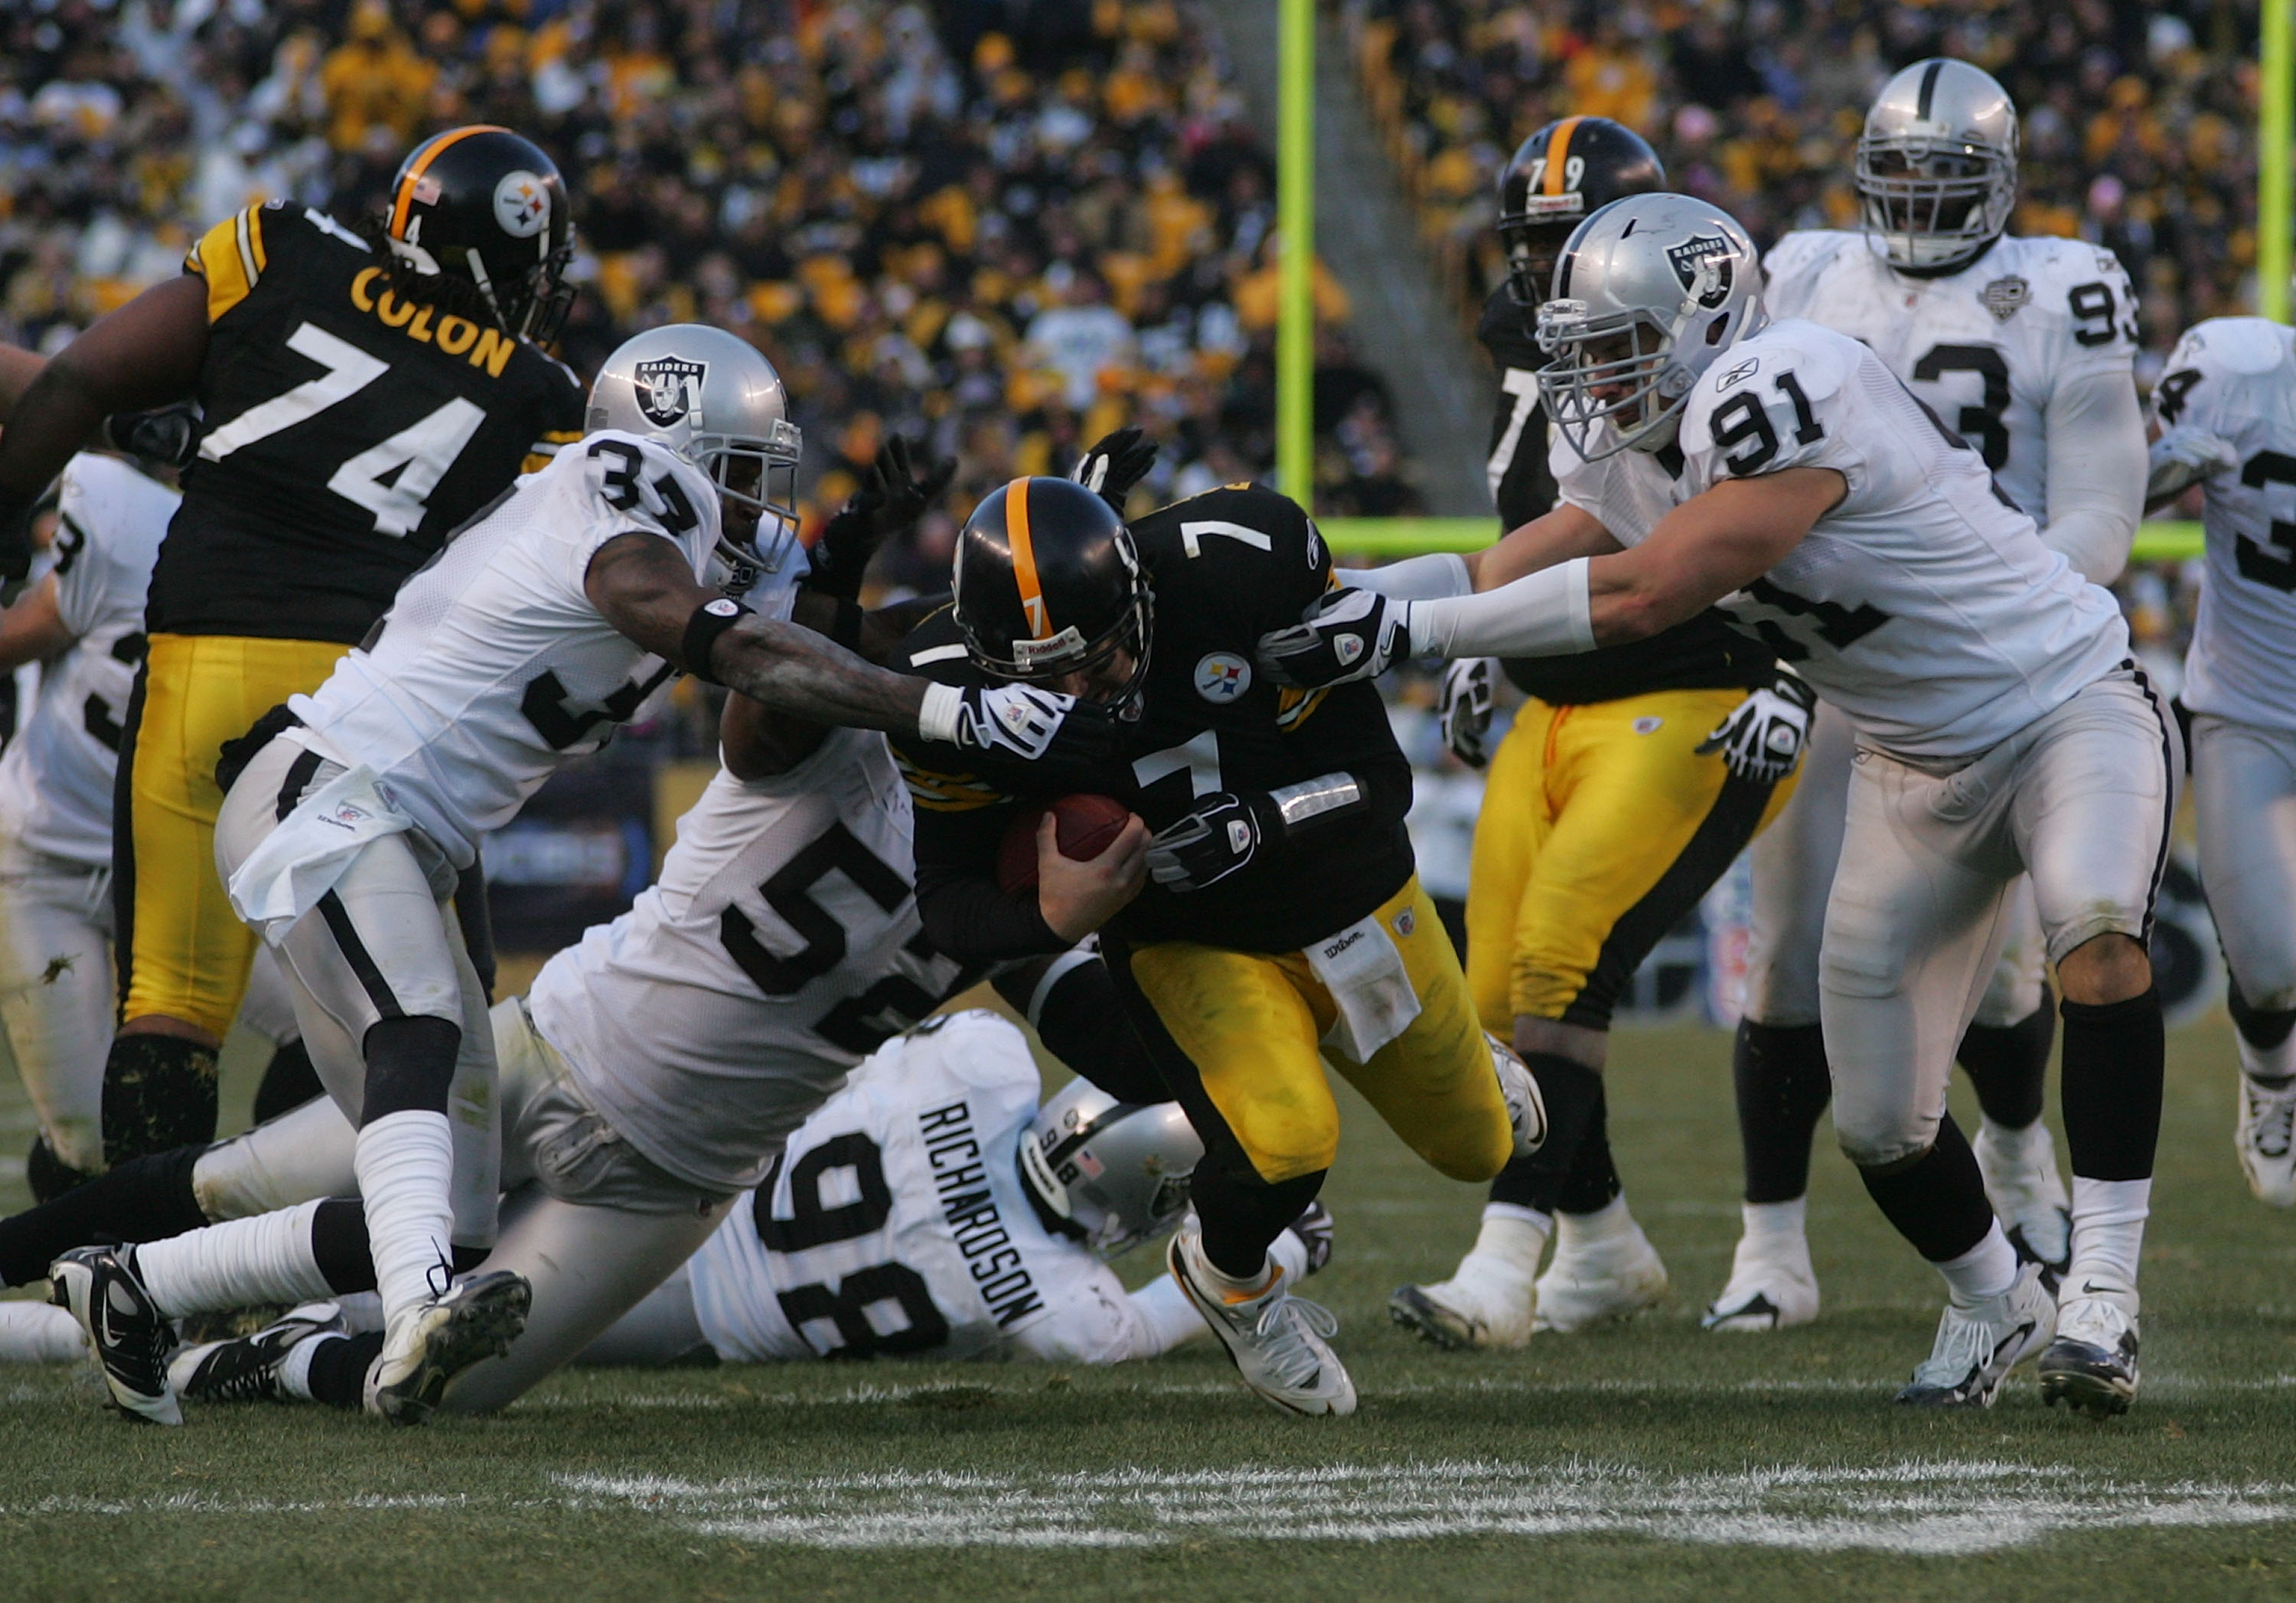 PITTSBURGH - DECEMBER 6: Ben Roethlisberger #7 of the Pittsburgh Steelers runs with the ball against the Oakland Raiders in the fourth quarter during the game on December 6, 2009 at Heinz Field in Pittsburgh, Pennsylvania. (Photo by Jared Wickerham/Getty